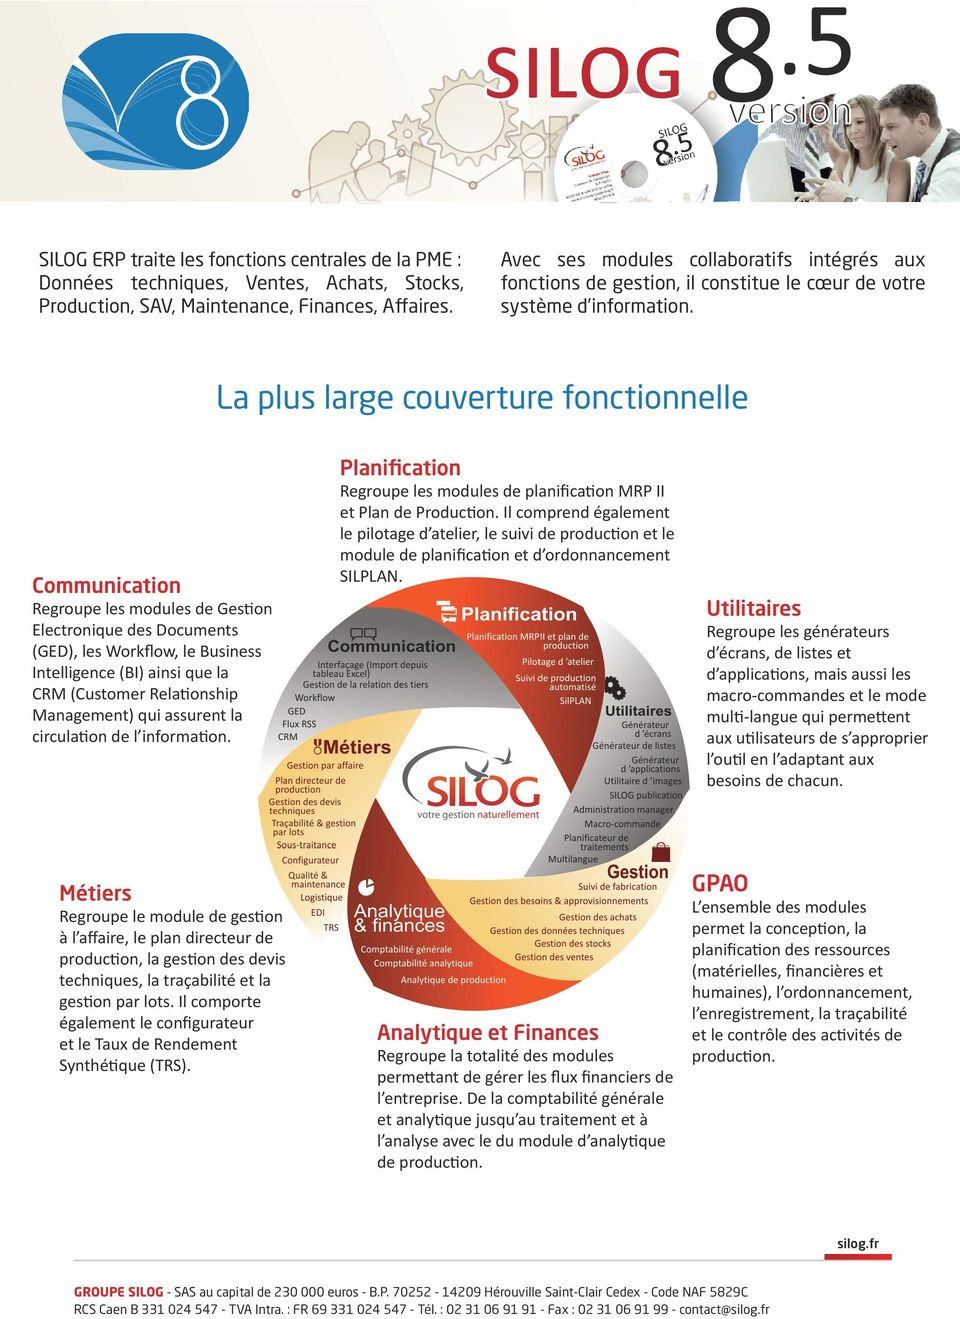 La plus large couverture fonctionnelle Communication Regroupe les modules de Gestion Electronique des Documents (GED), les Workflow, le Business Intelligence (BI) ainsi que la CRM (Customer